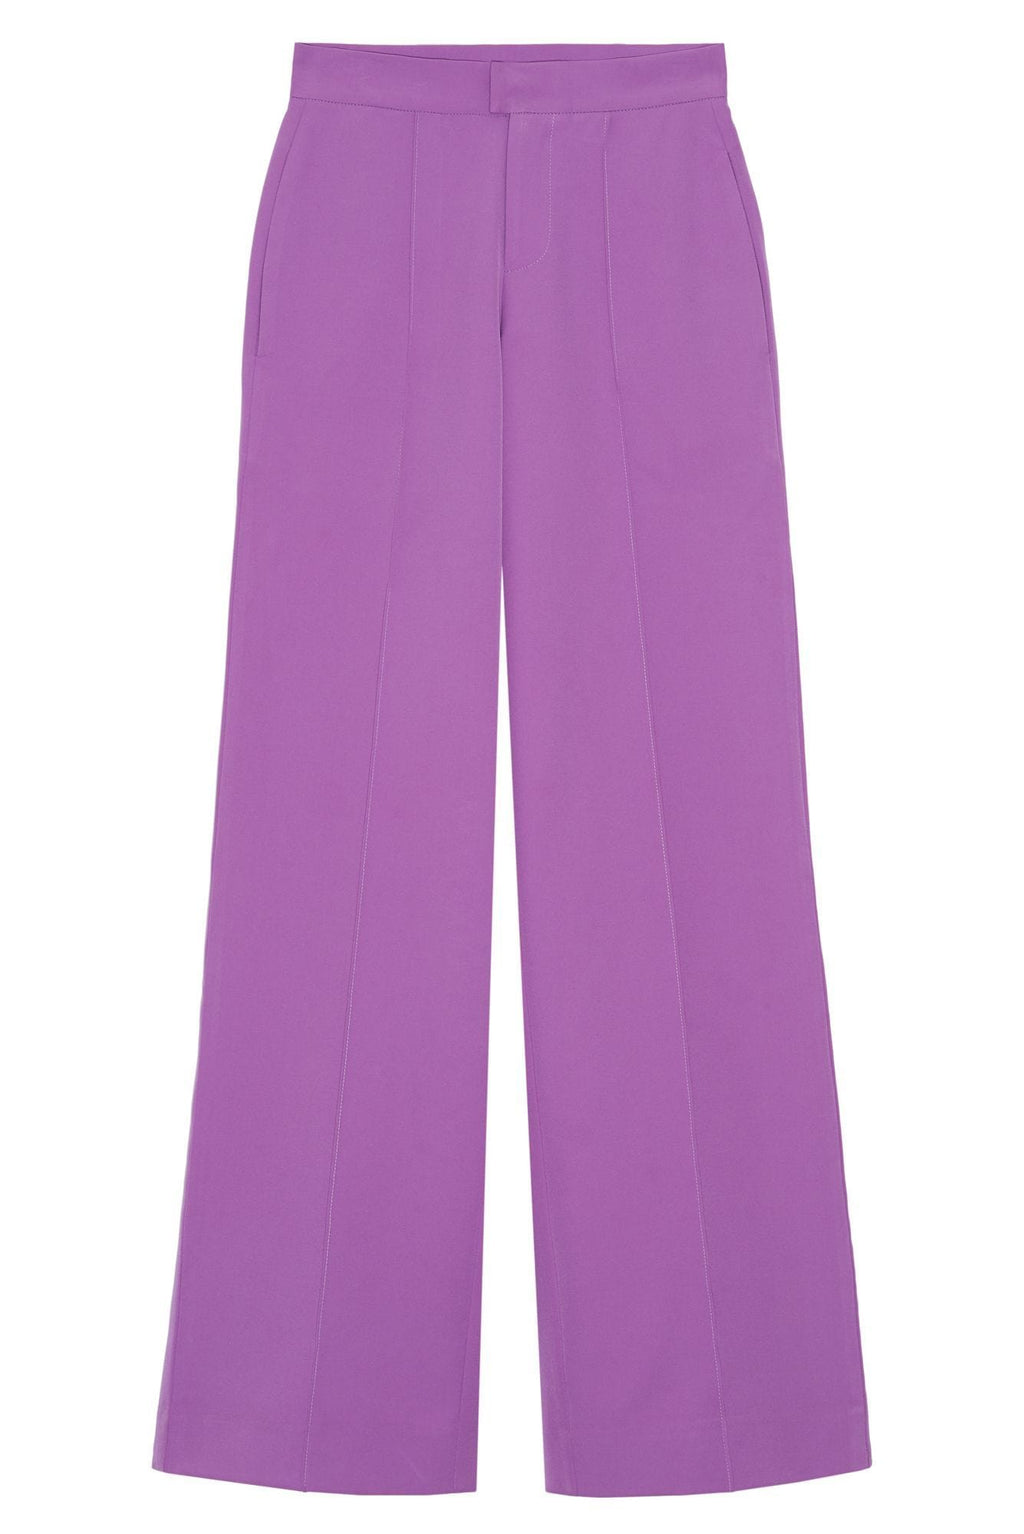 women's purple wide leg pants